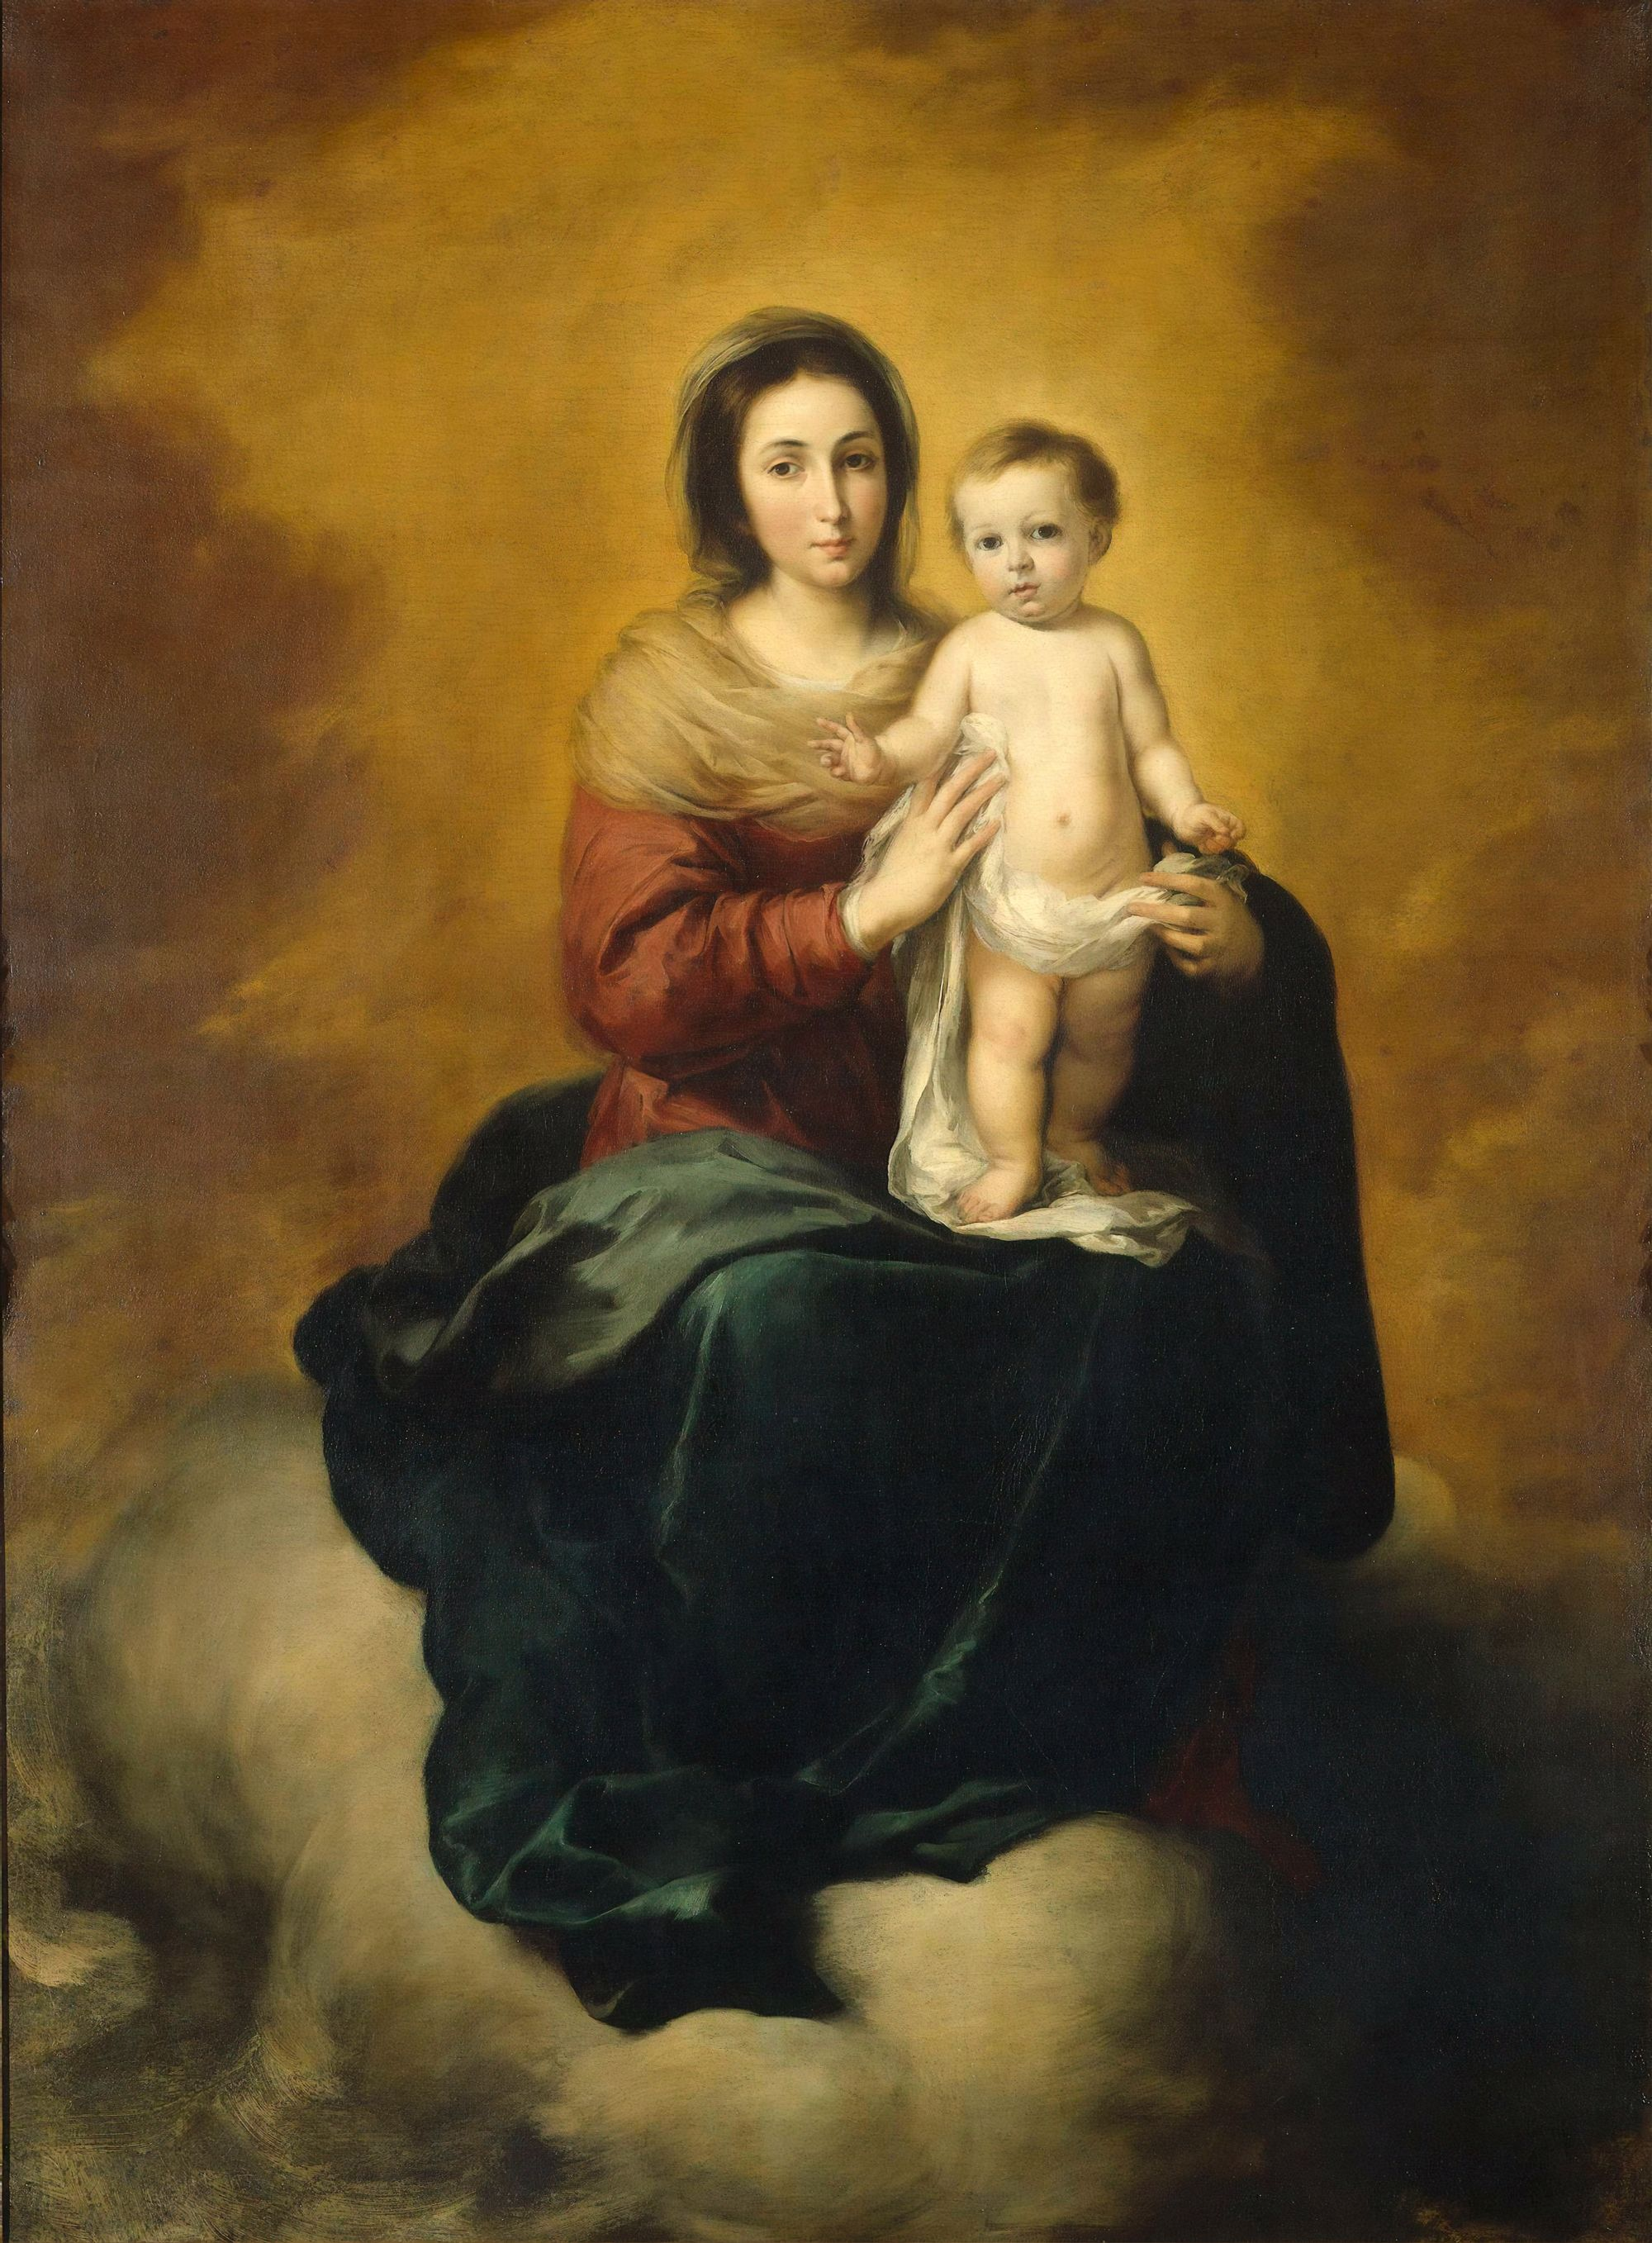 Fr. Pete's Homily - Mary Mother of God